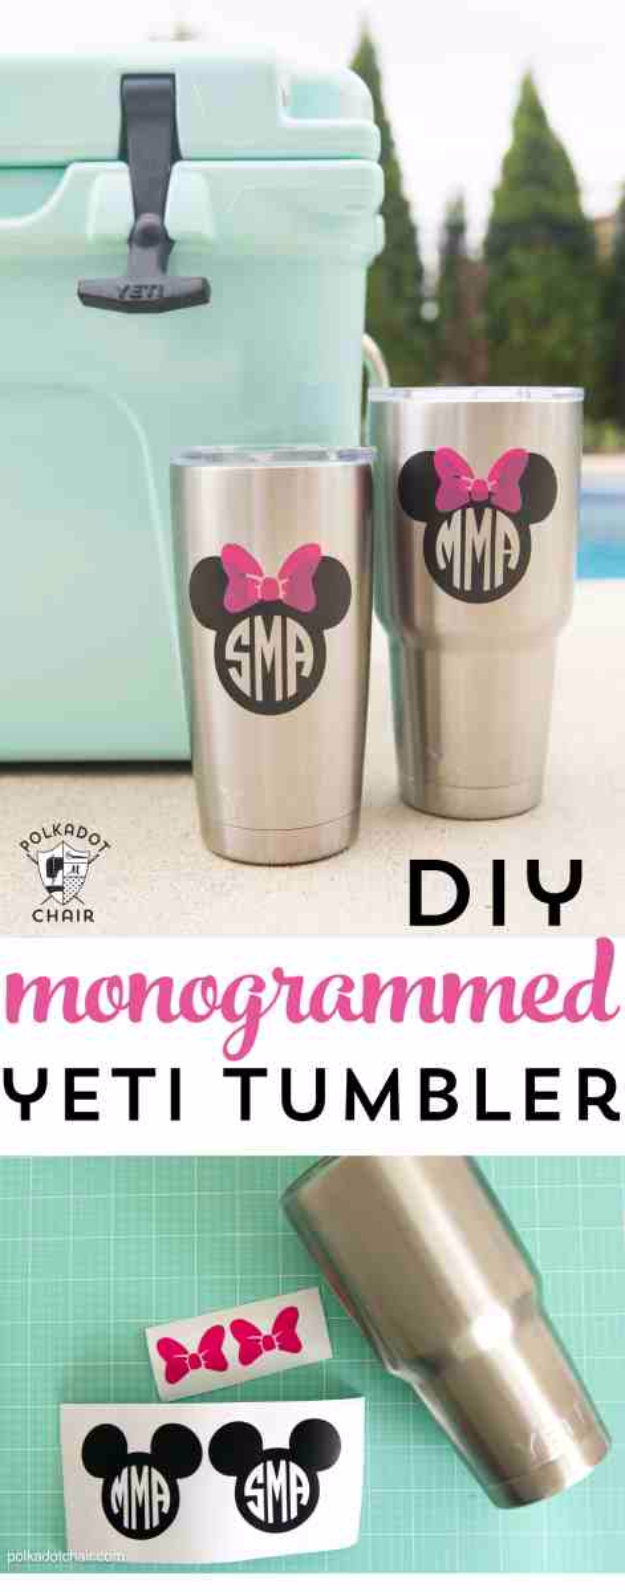 Best DIY Gifts for Girls - DIY Disney Monogrammed Yeti Tumbler - Cute Crafts and DIY Projects that Make Cool DYI Gift Ideas for Young and Older Girls, Teens and Teenagers - Awesome Room and Home Decor for Bedroom, Fashion, Jewelry and Hair Accessories - Cheap Craft Projects To Make For a Girl -DIY Christmas Presents for Tweens #diygifts #girlsgifts